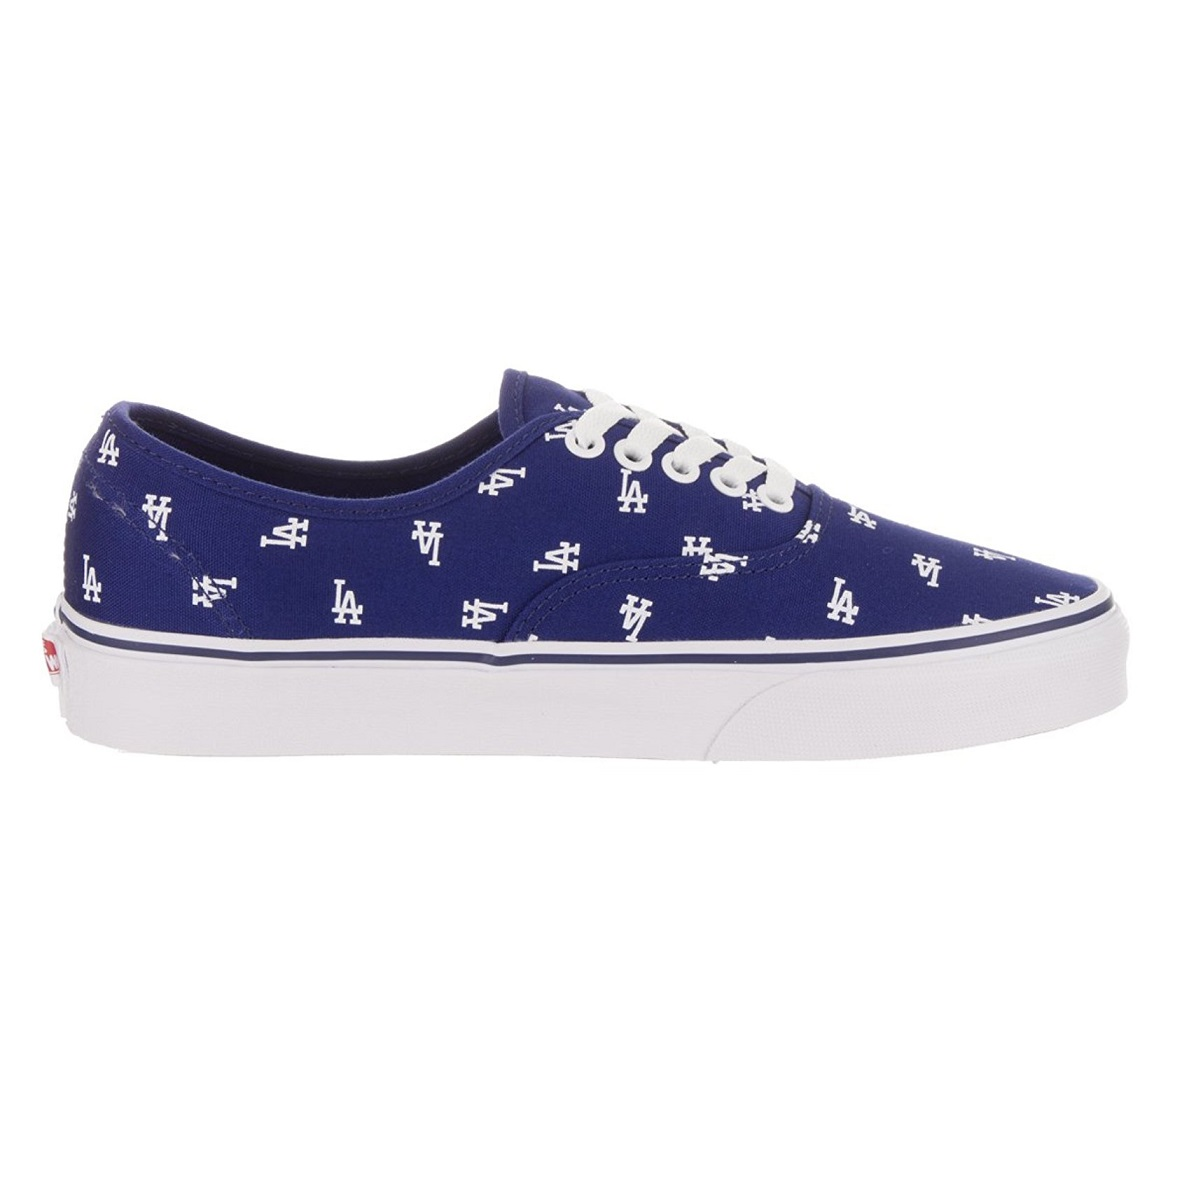 6d2885216c Vans LA Dodgers Print MLB Baseball Skate Shoes